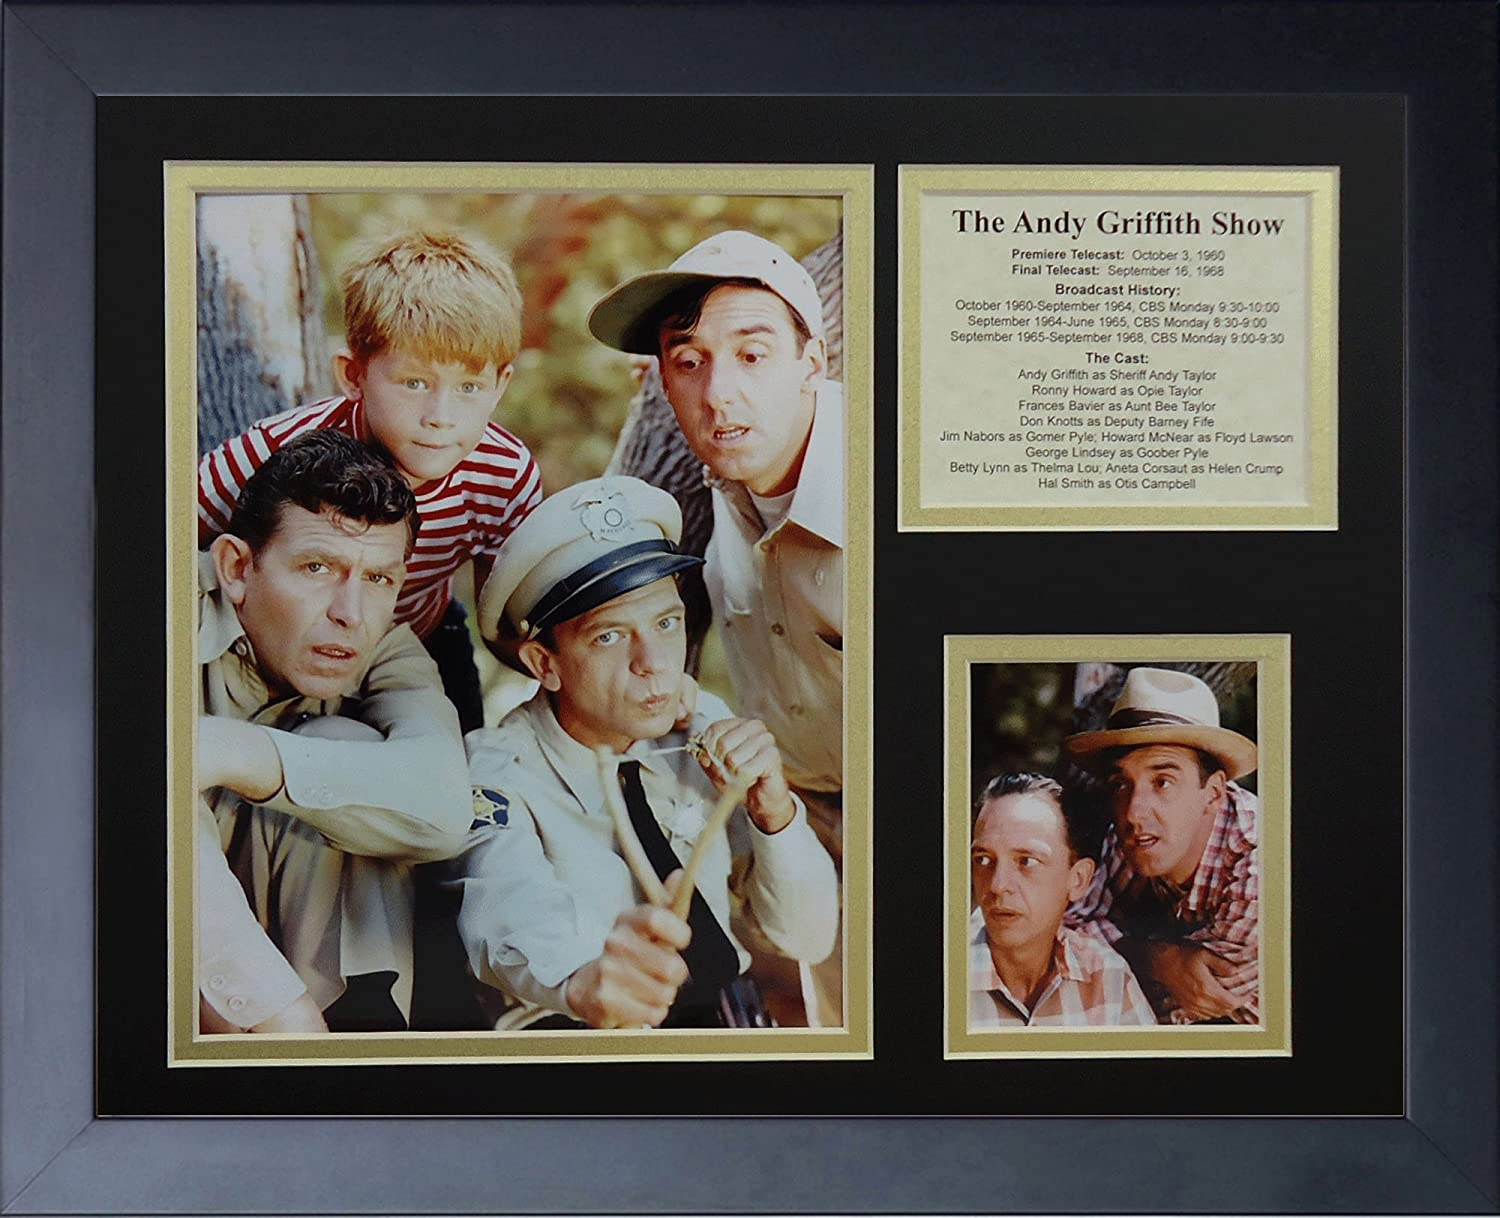 11 x 14-Inch Legends Never Die Andy Griffith Color Framed Photo Collage